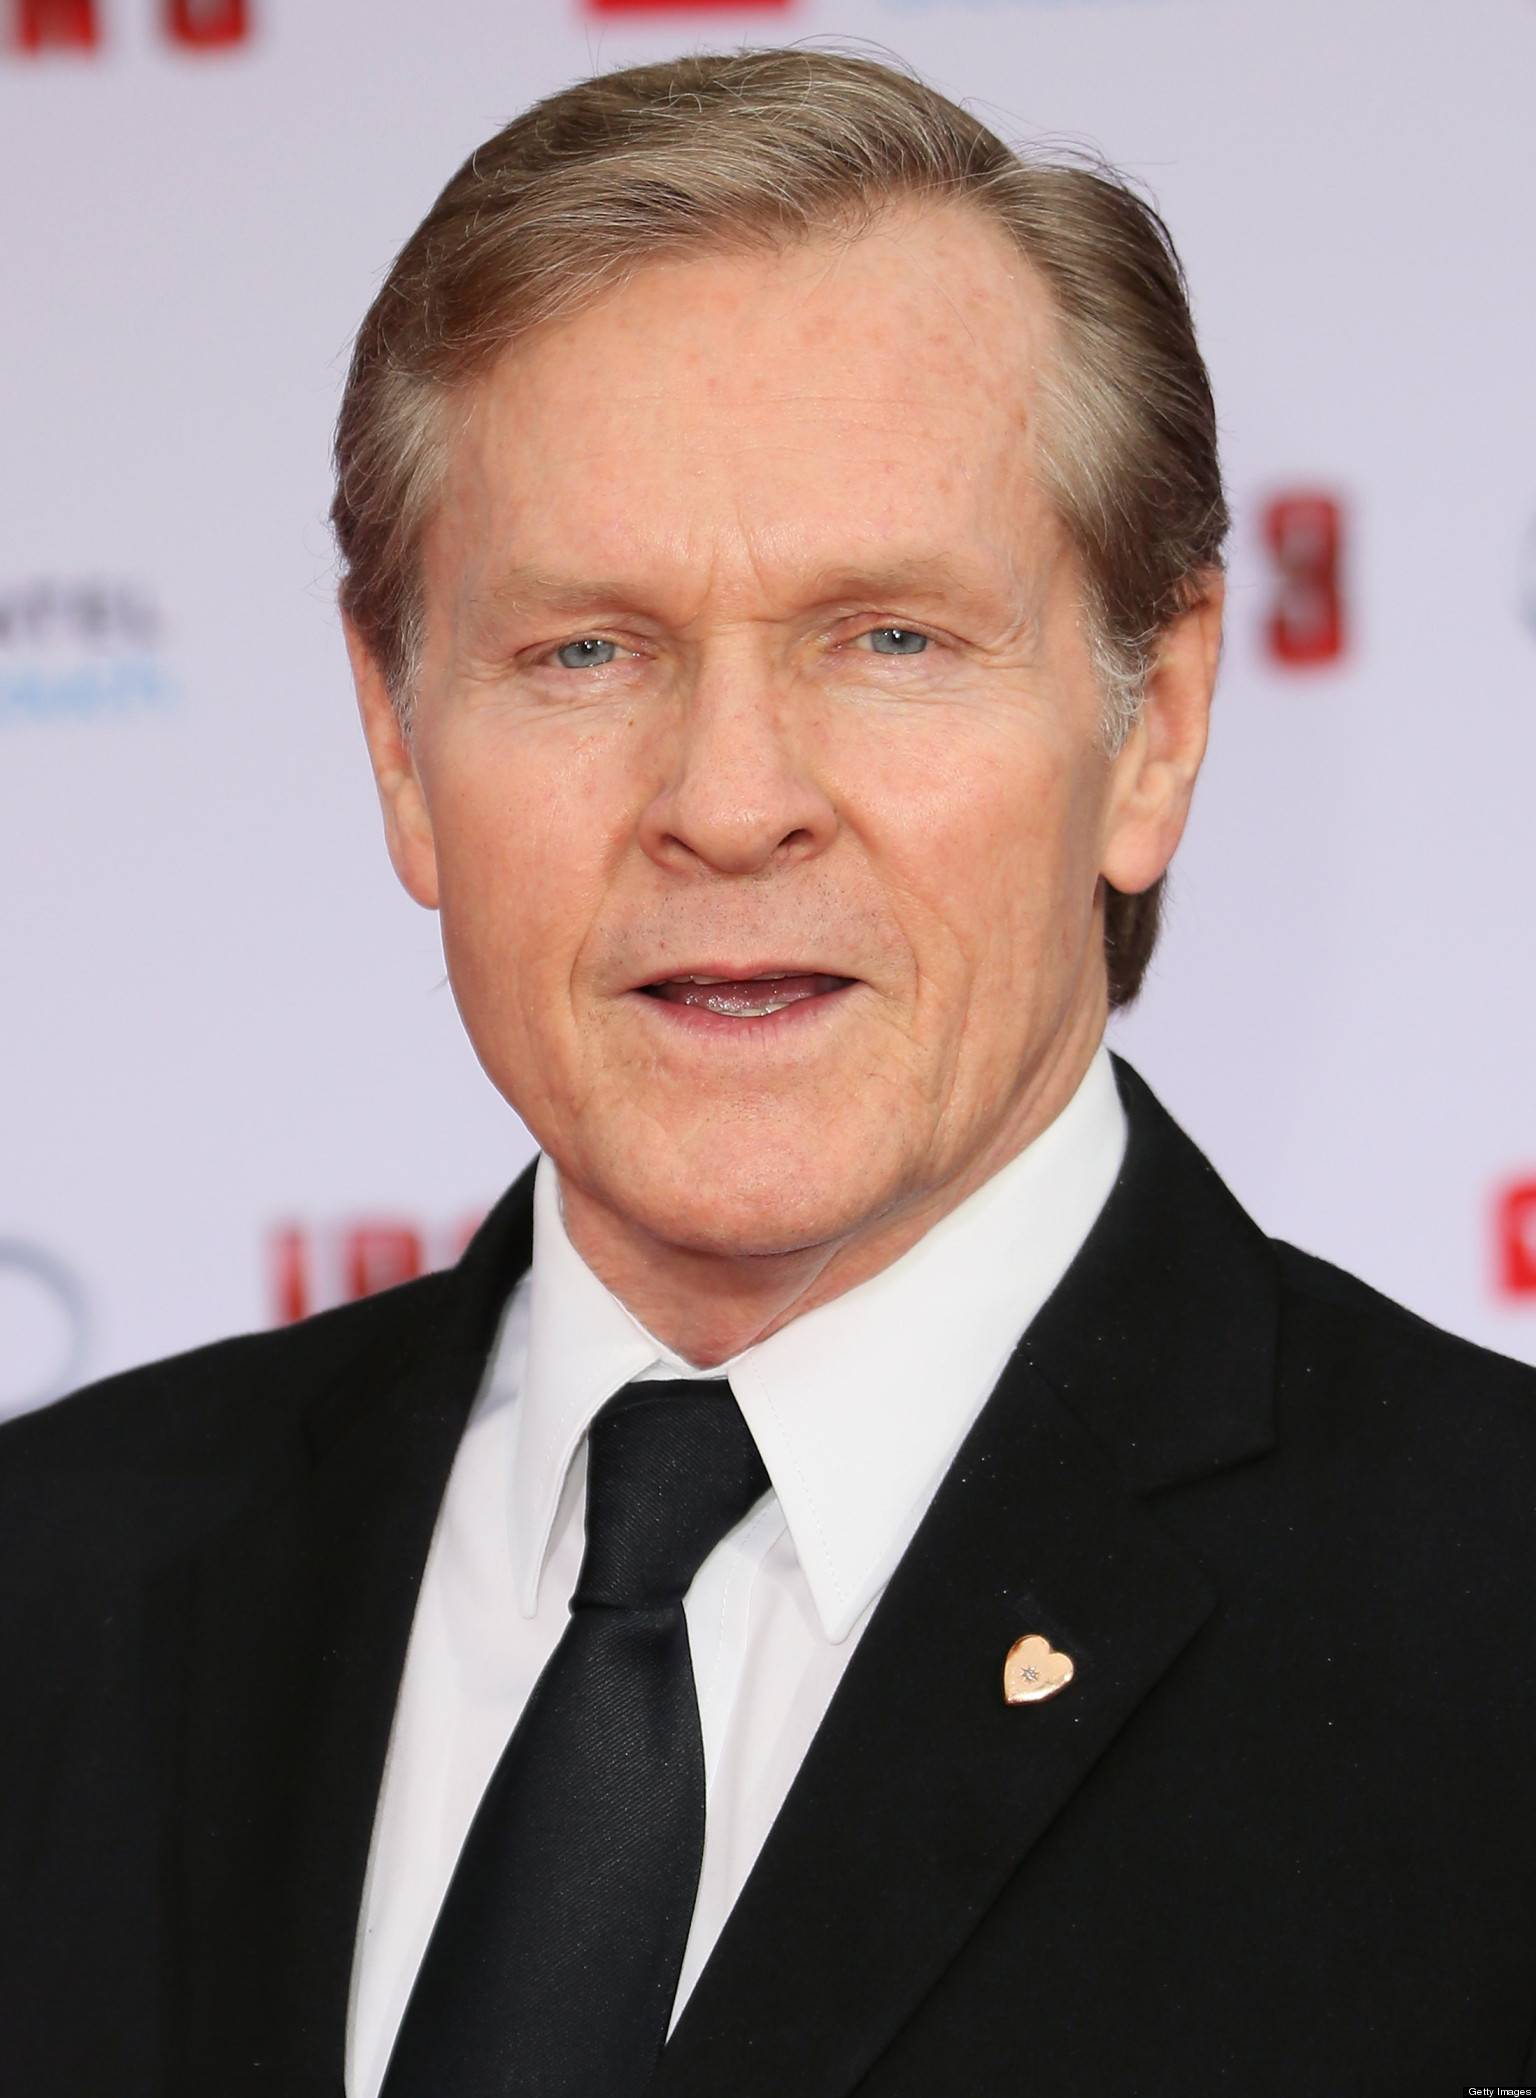 The 67-year old son of father (?) and mother(?), 173 cm tall William Sadler in 2018 photo